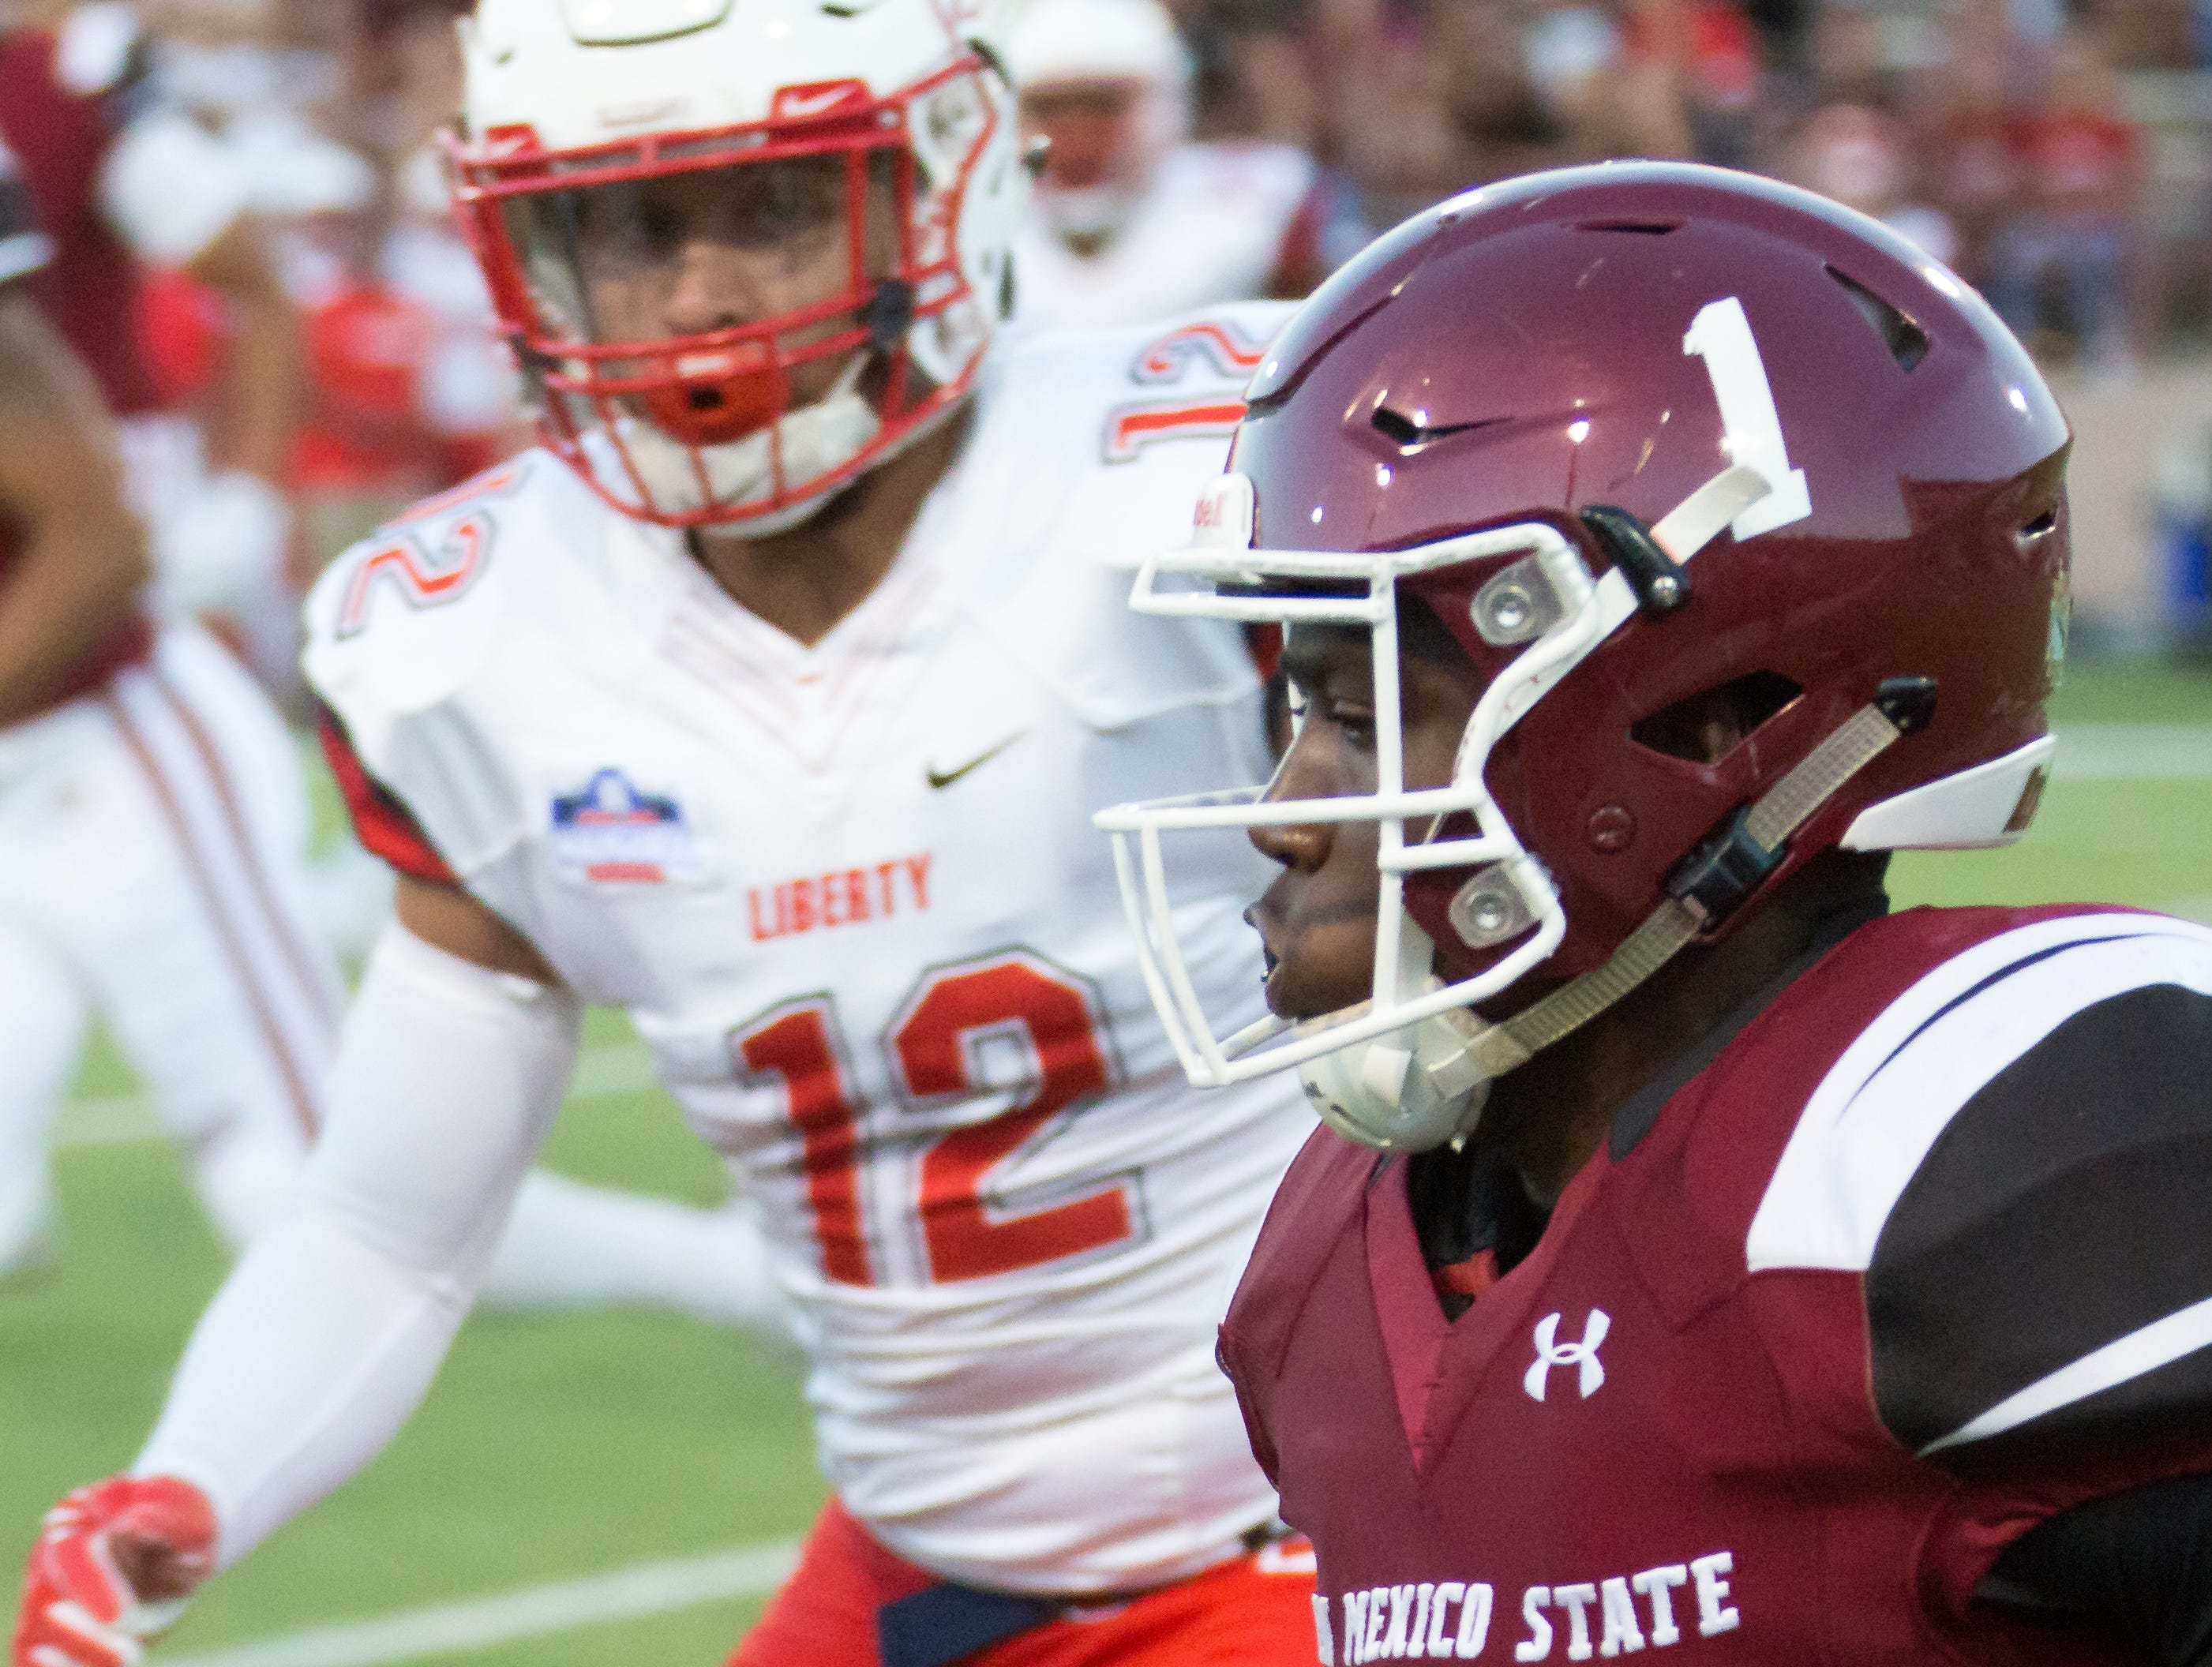 NMSU's Jason Huntley runs for some yards as Liberty's Brandon Tillmon closes in on